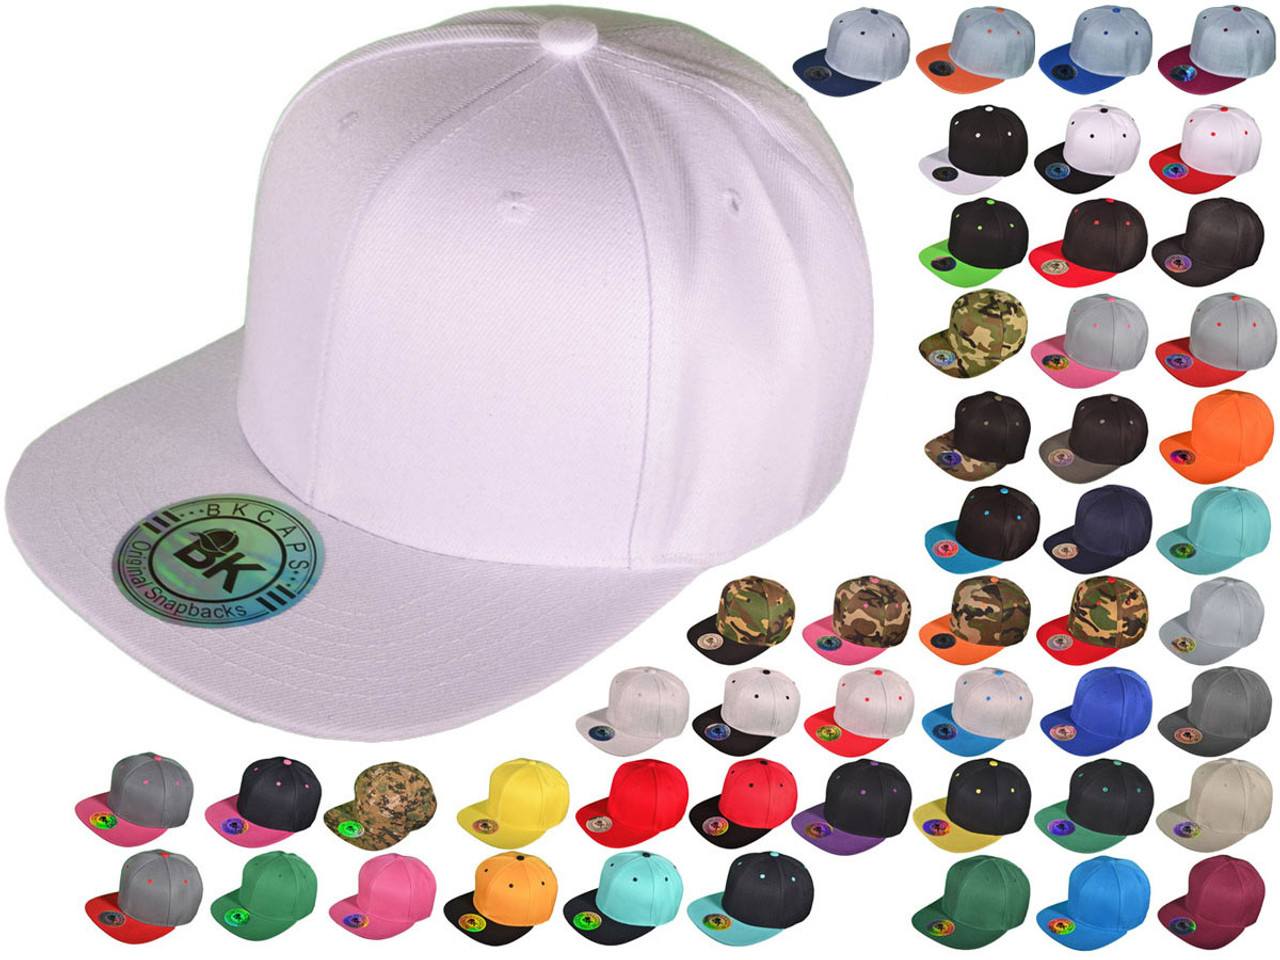 7f9bc8bf ... BK Caps Flat Bill Plain Vintage Snapbacks with Same Color Underbill -  3003 · Blank Vintage Snapback Hats